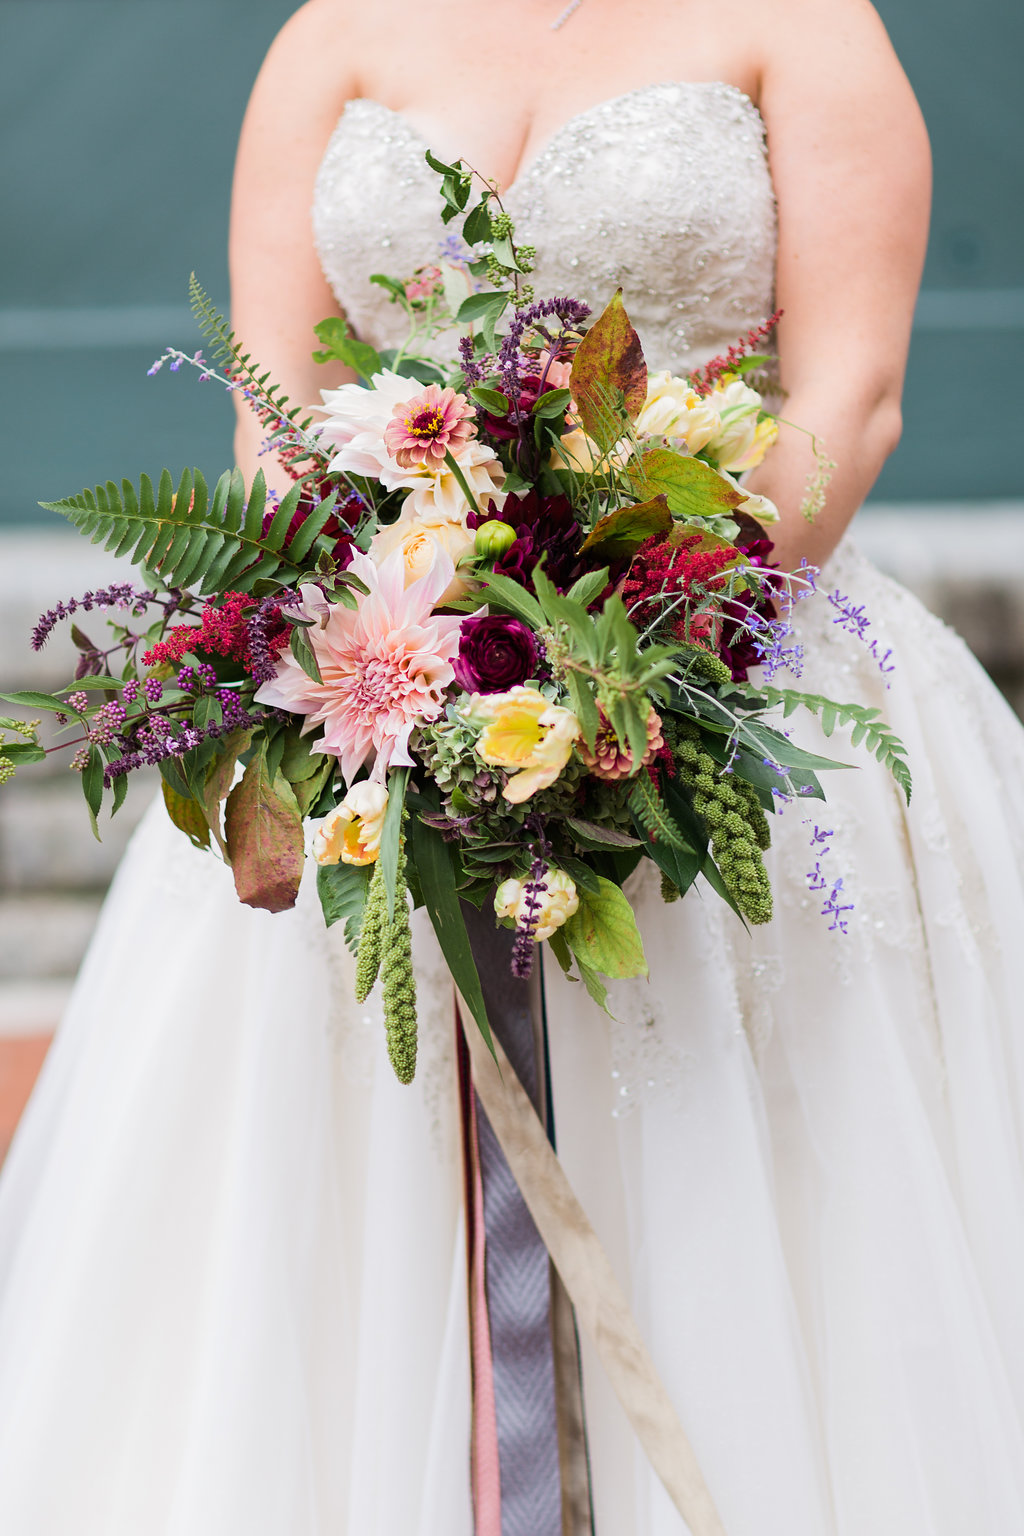 wild bouquet with ferns - https://ruffledblog.com/rustic-woodland-chic-wedding-inspiration-in-baltimore